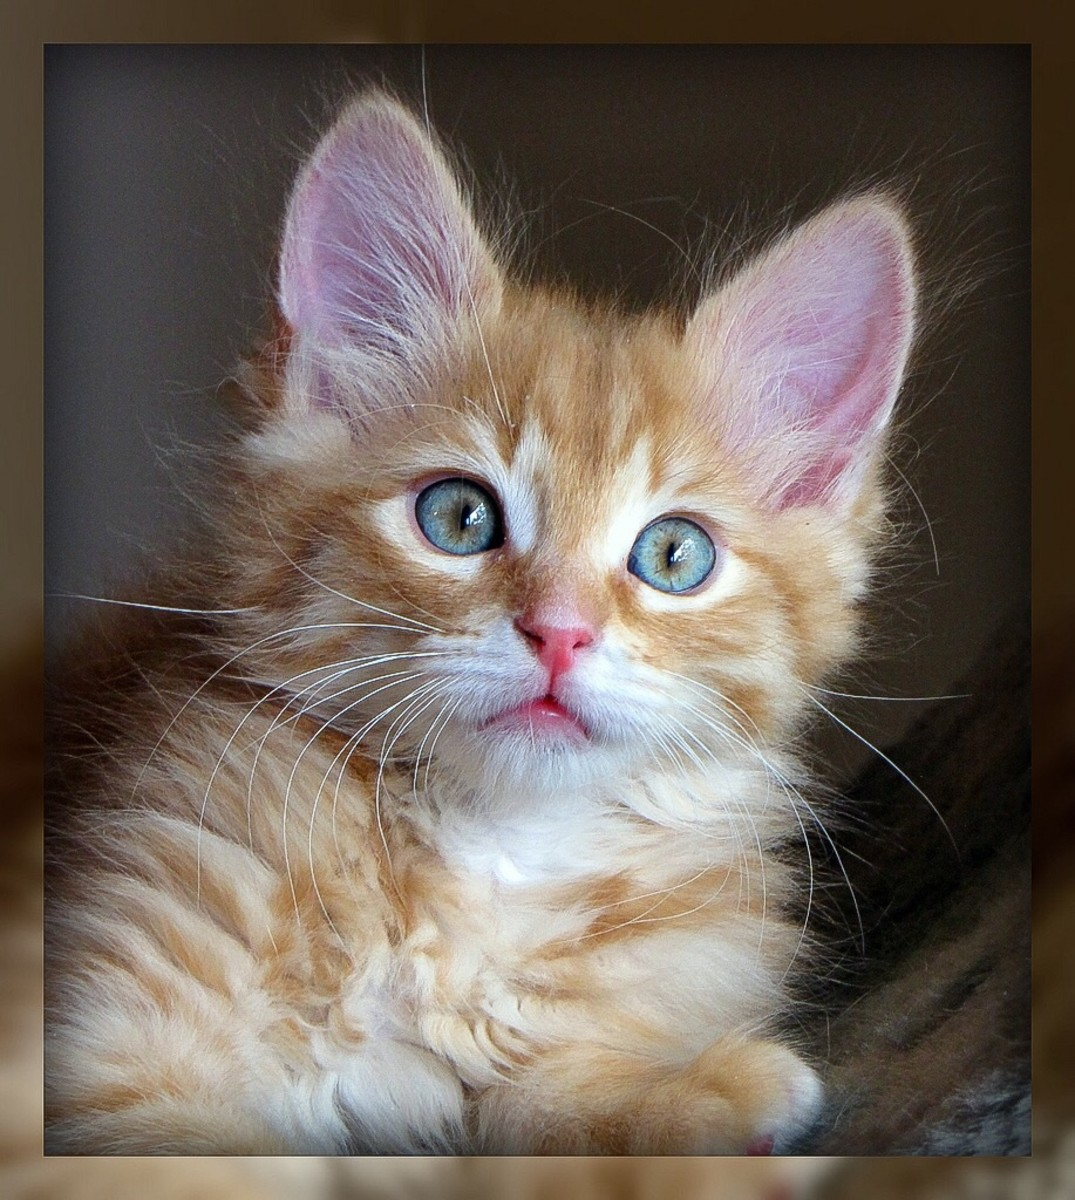 A kitten with a very alert expression